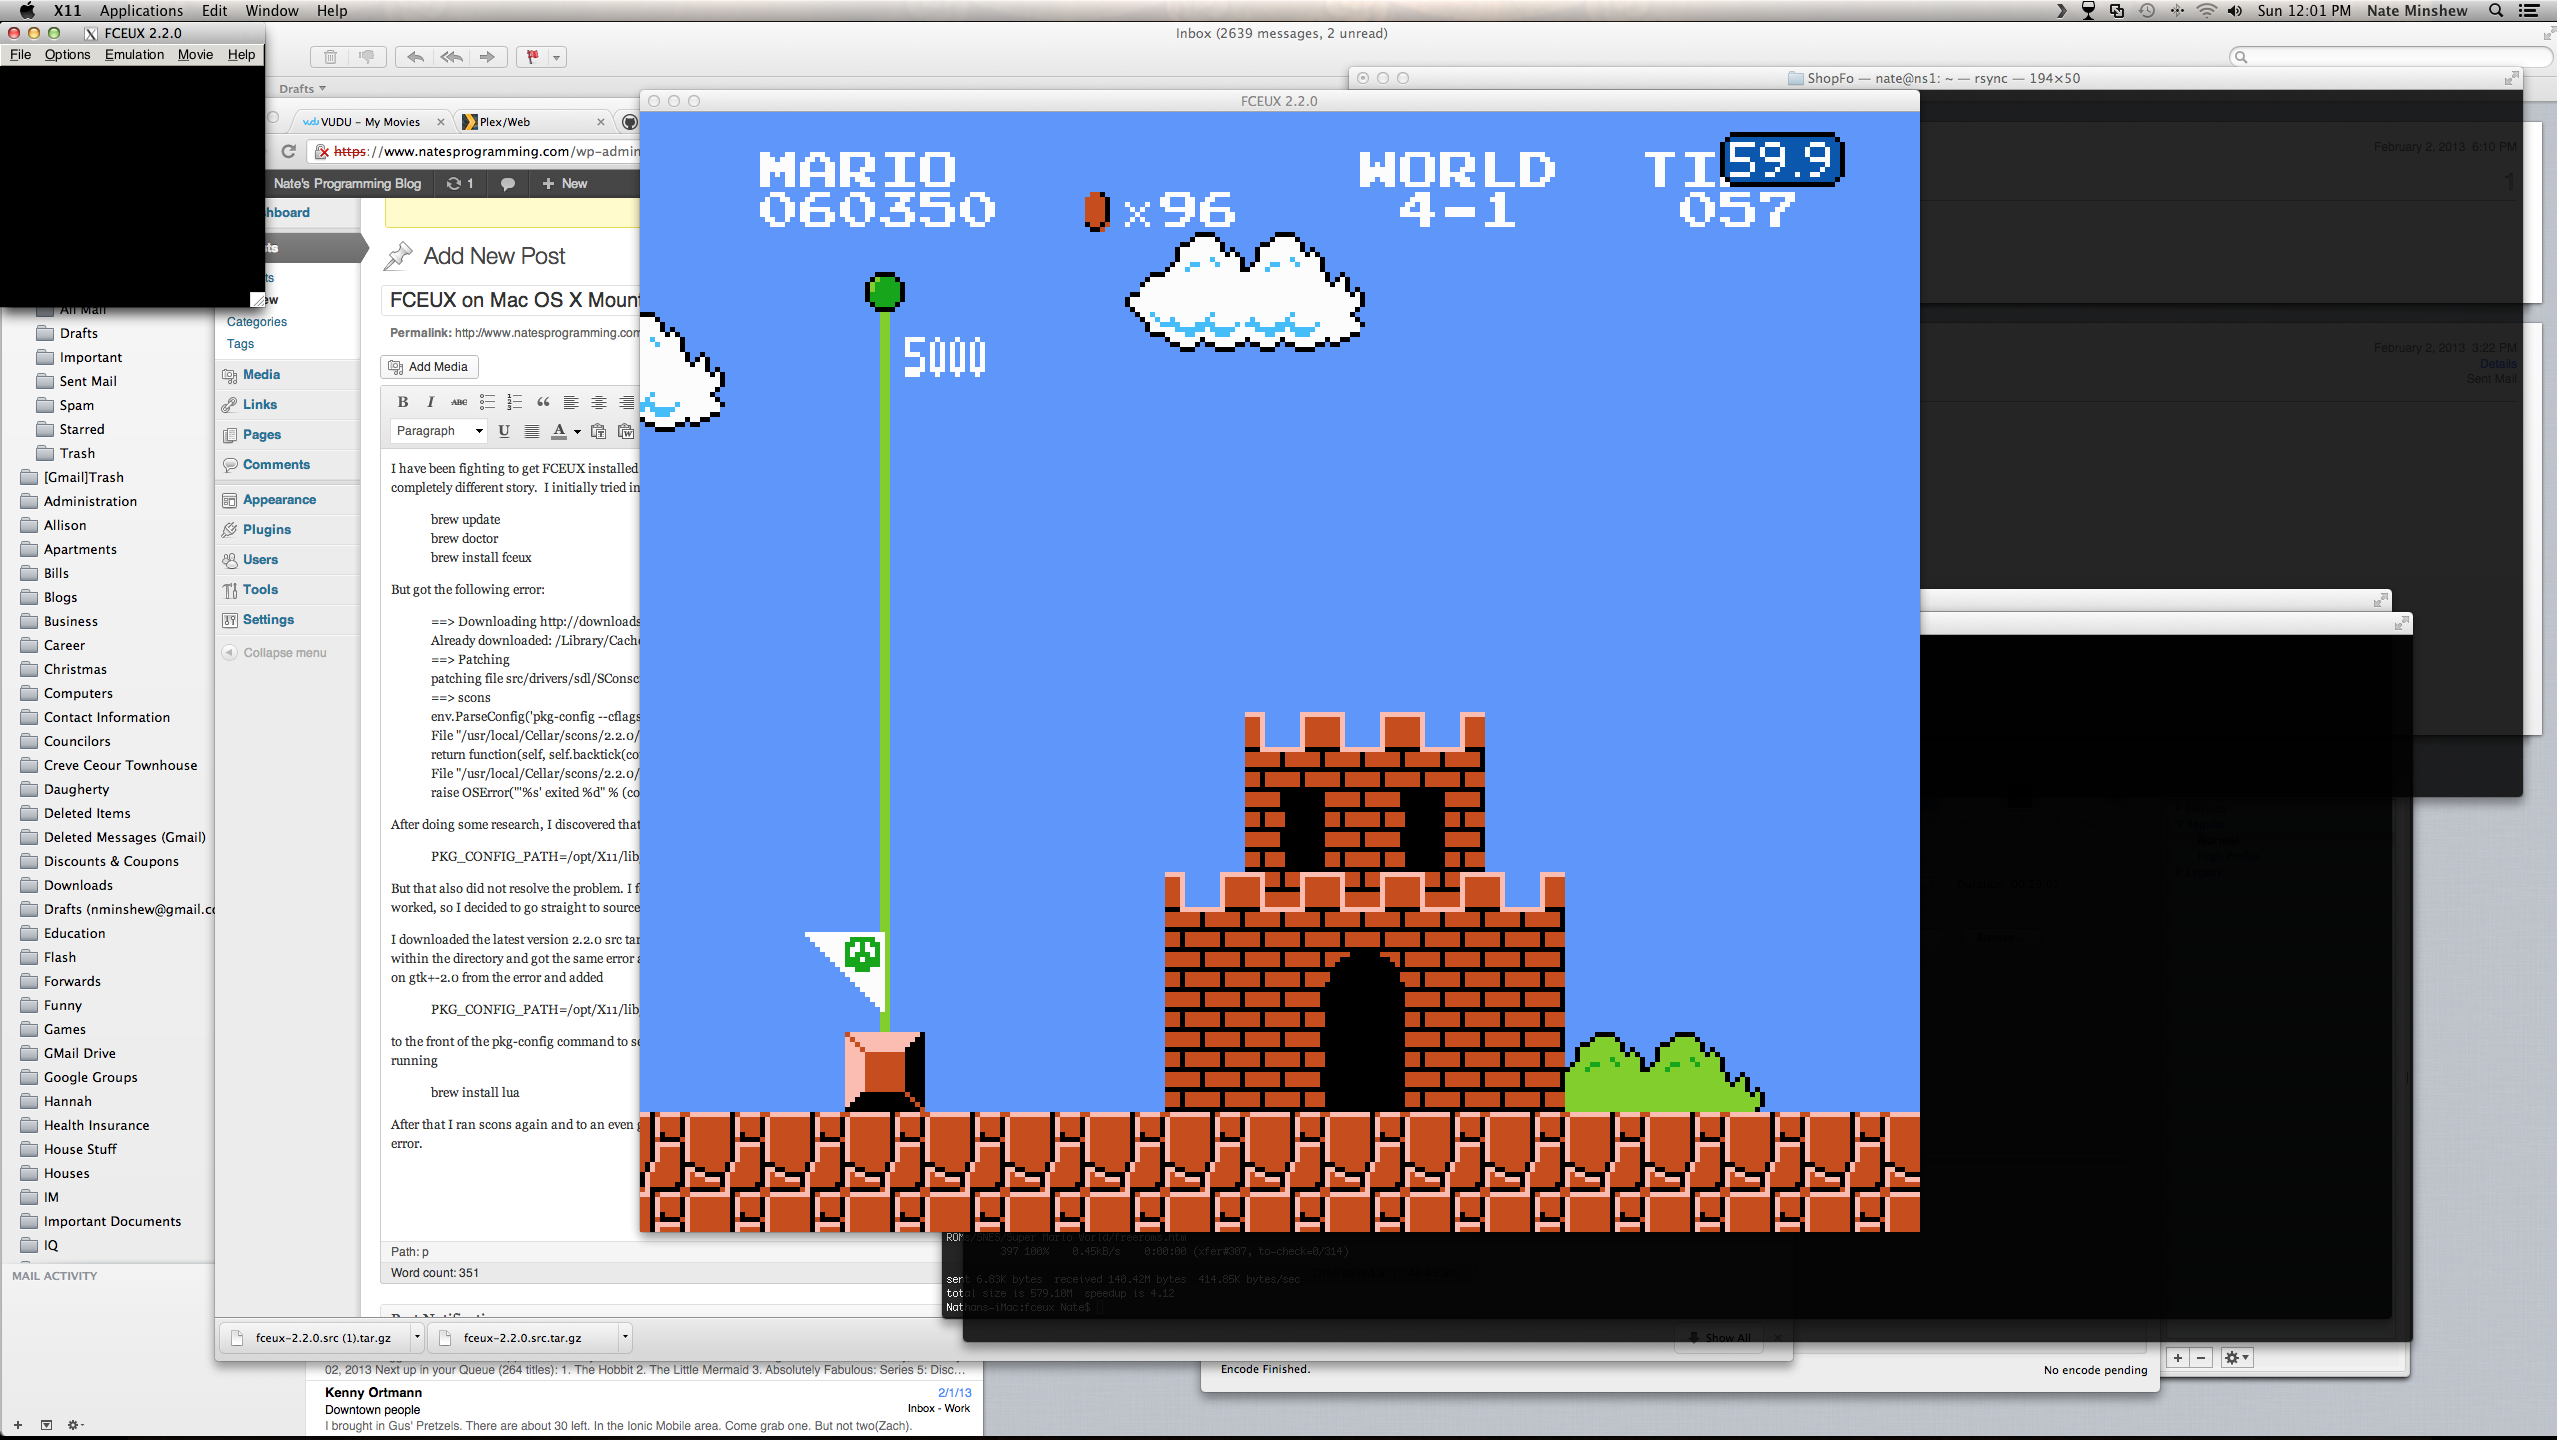 FCEUX running Super Mario Bros on Mac OS X Mountain Lion